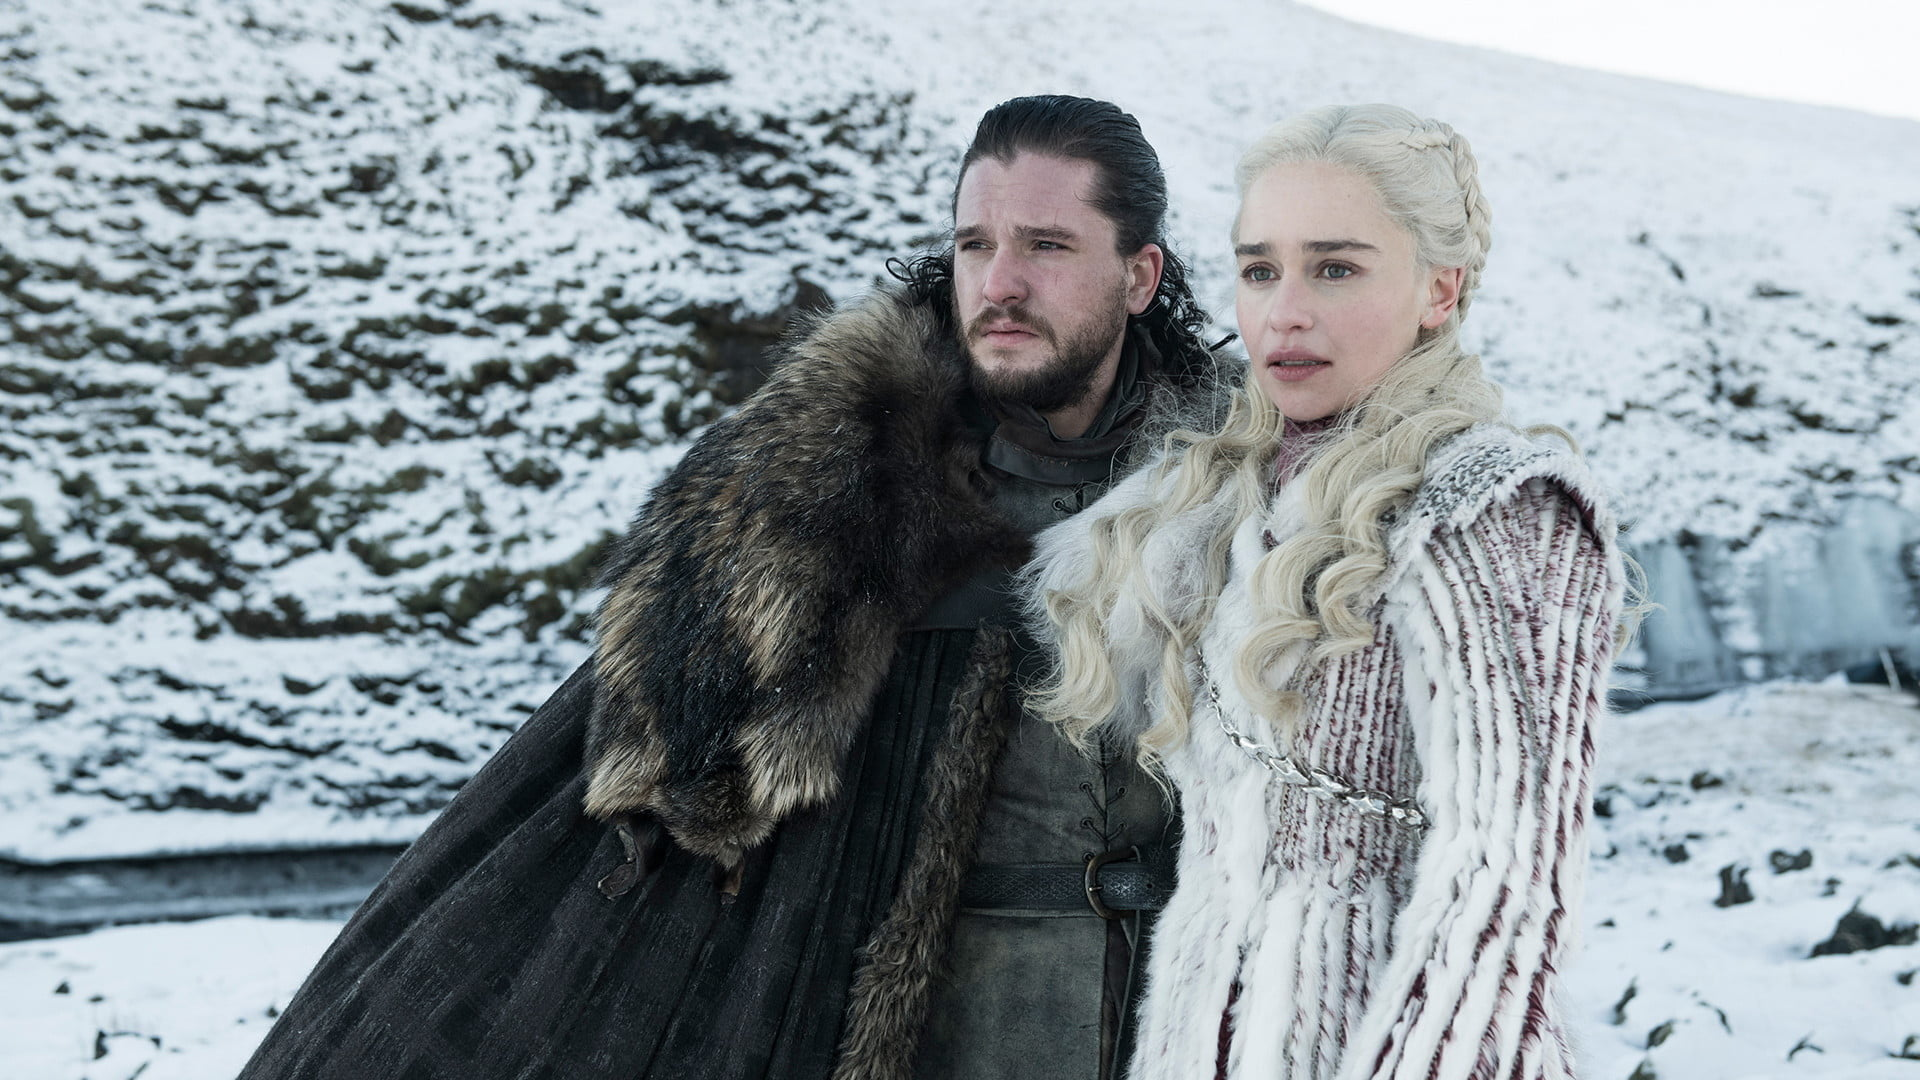 game of thrones season 7 episode 1 free download utorrent